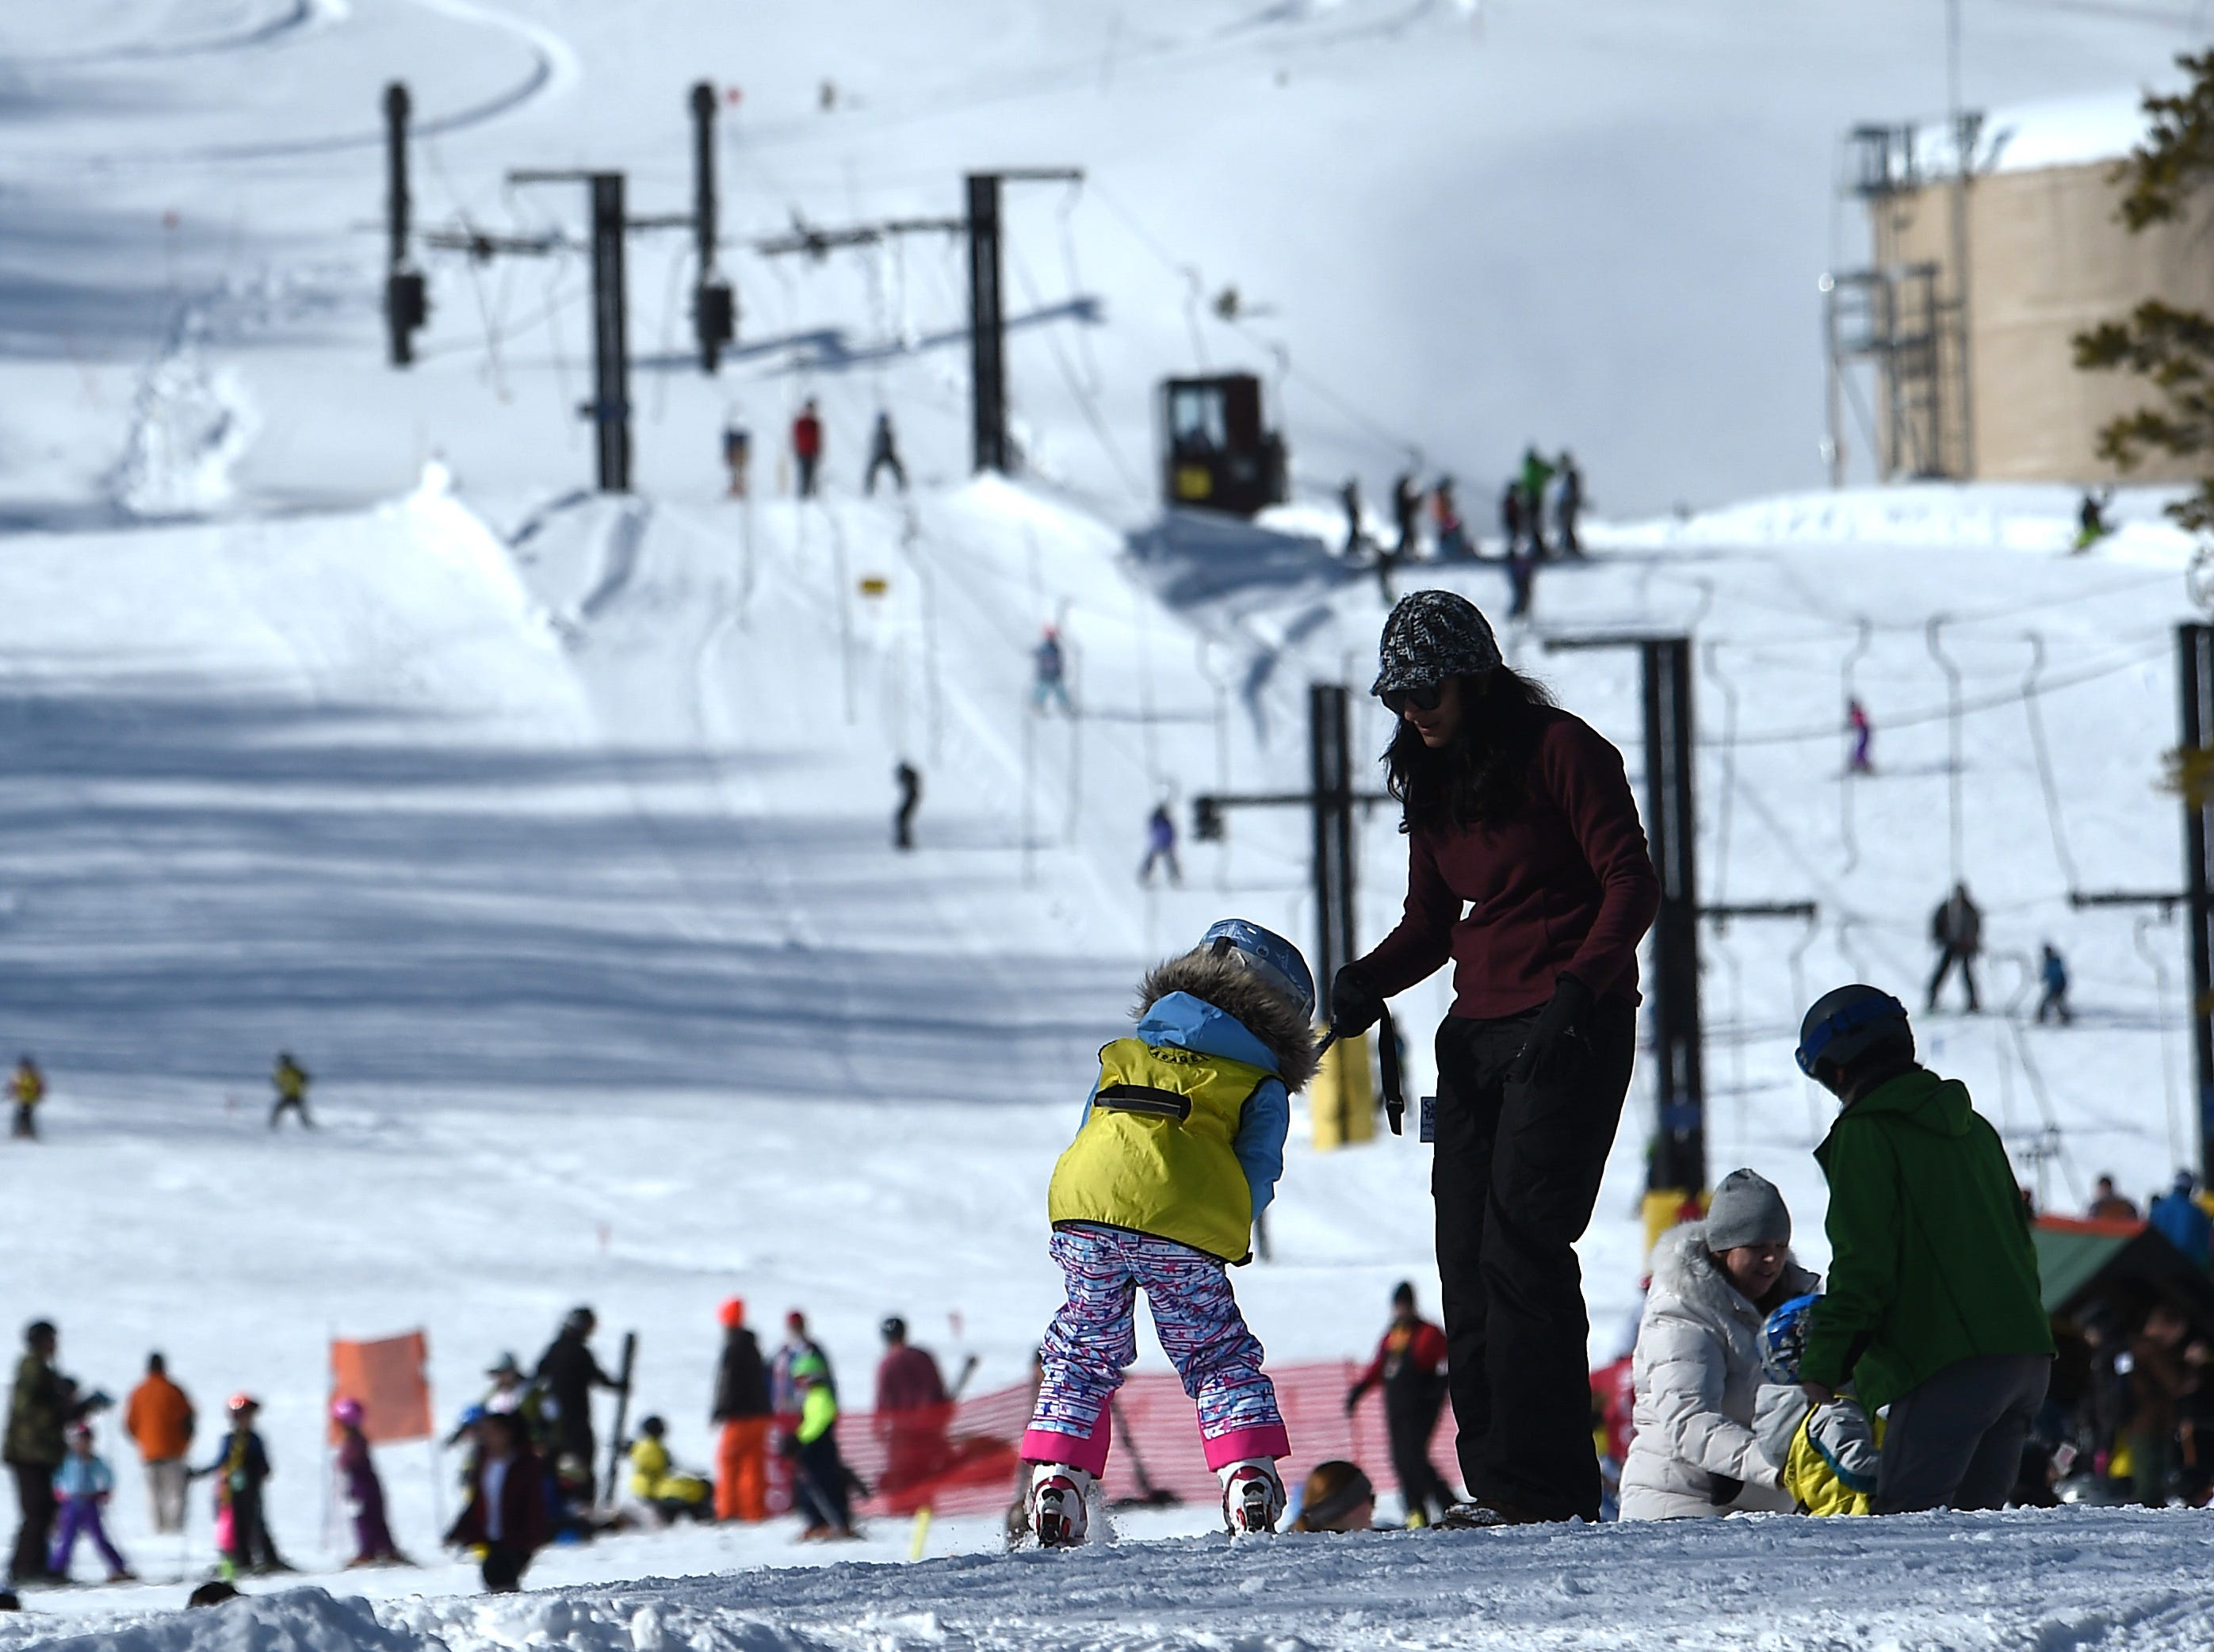 A new skier gets some help during opening day for the Sky Tavern Jr. Ski Program near Reno on Jan. 26, 2019.